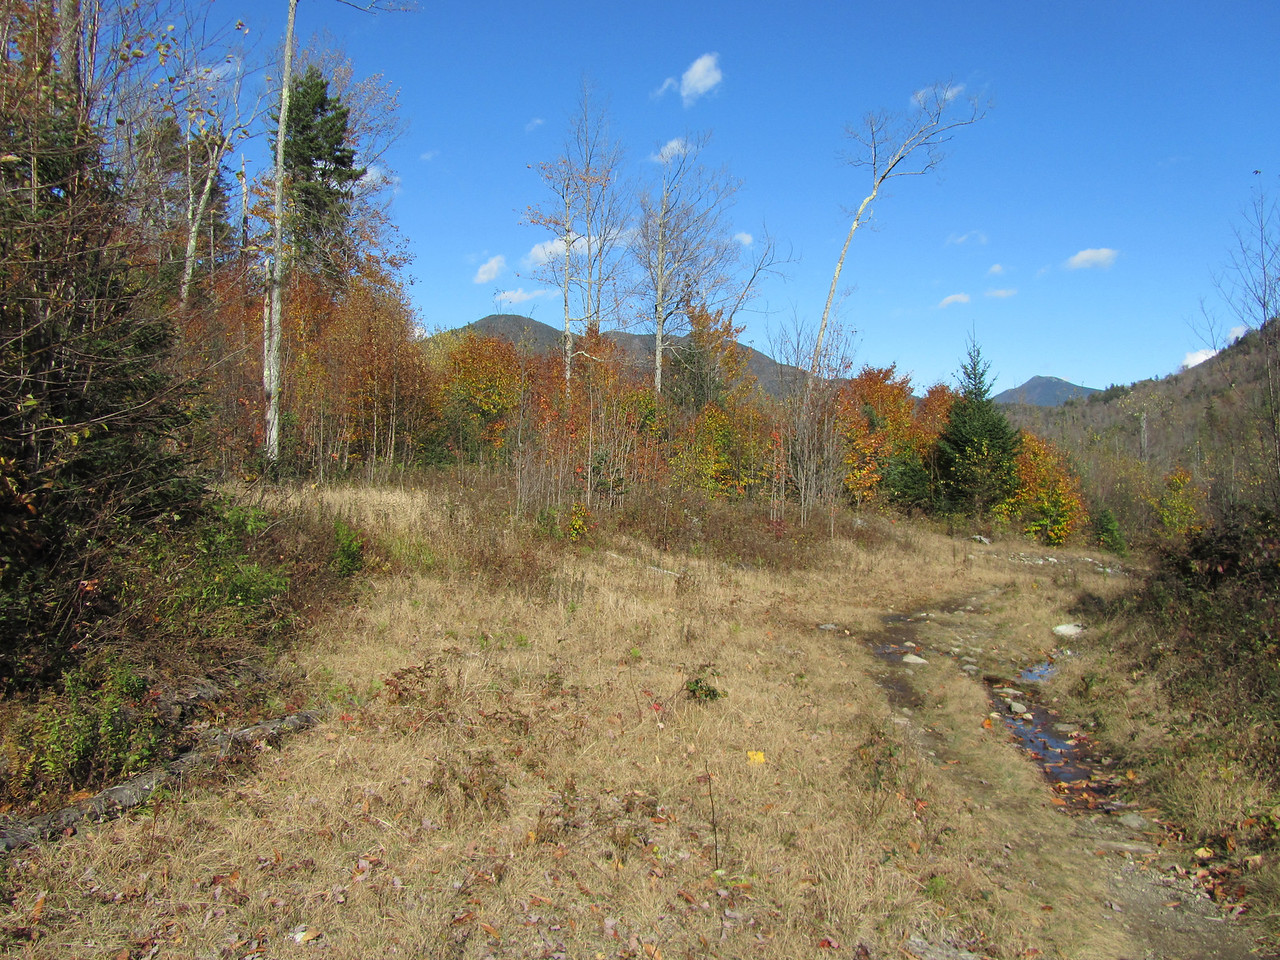 The trailhead from upper works. Apparently a microburst came through a few years ago and leveled the forest.